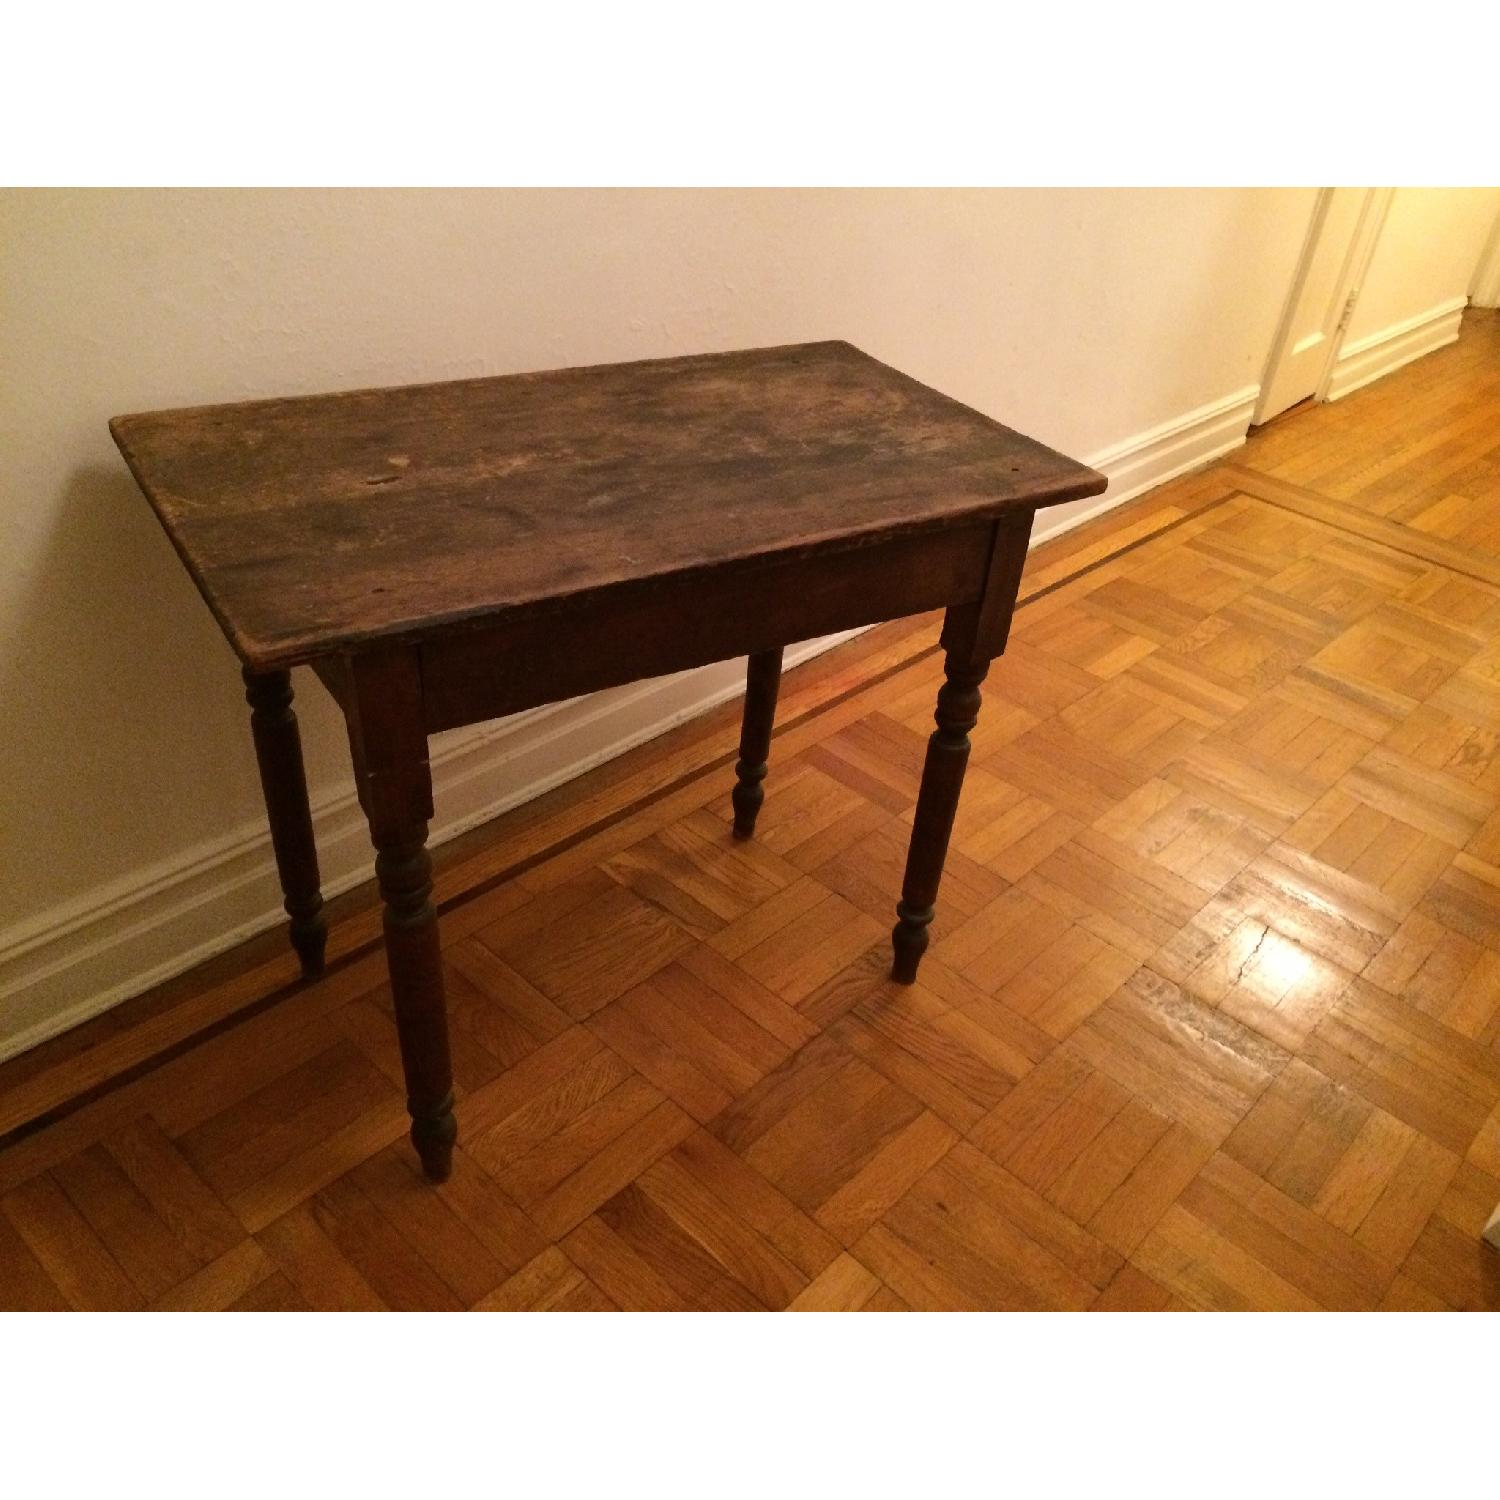 Antique Small Rustic Table - image-1